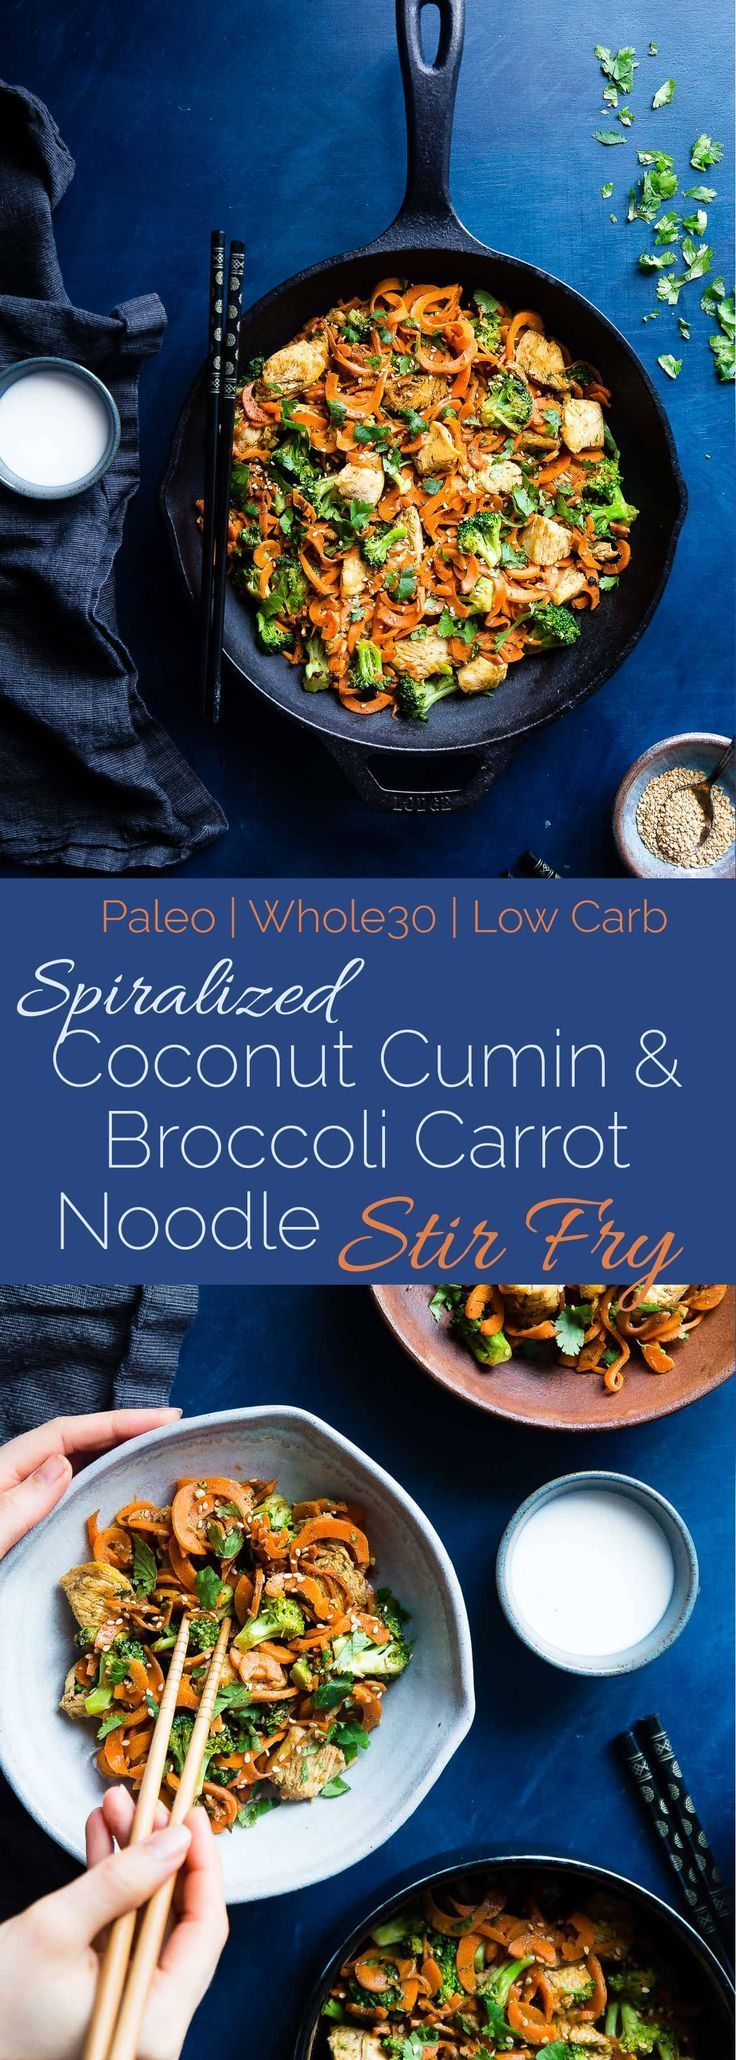 Whole30 Chicken Stir Fry with Cumin Coconut Carrot Noodles - This gluten free, low carb chicken stir fry has creamy coconut, coriander and cardamom! Add broccoli and carrot noodles for a quick and easy, paleo weeknight dinner! | Foodfaithfitness.com | @FoodFaithFit